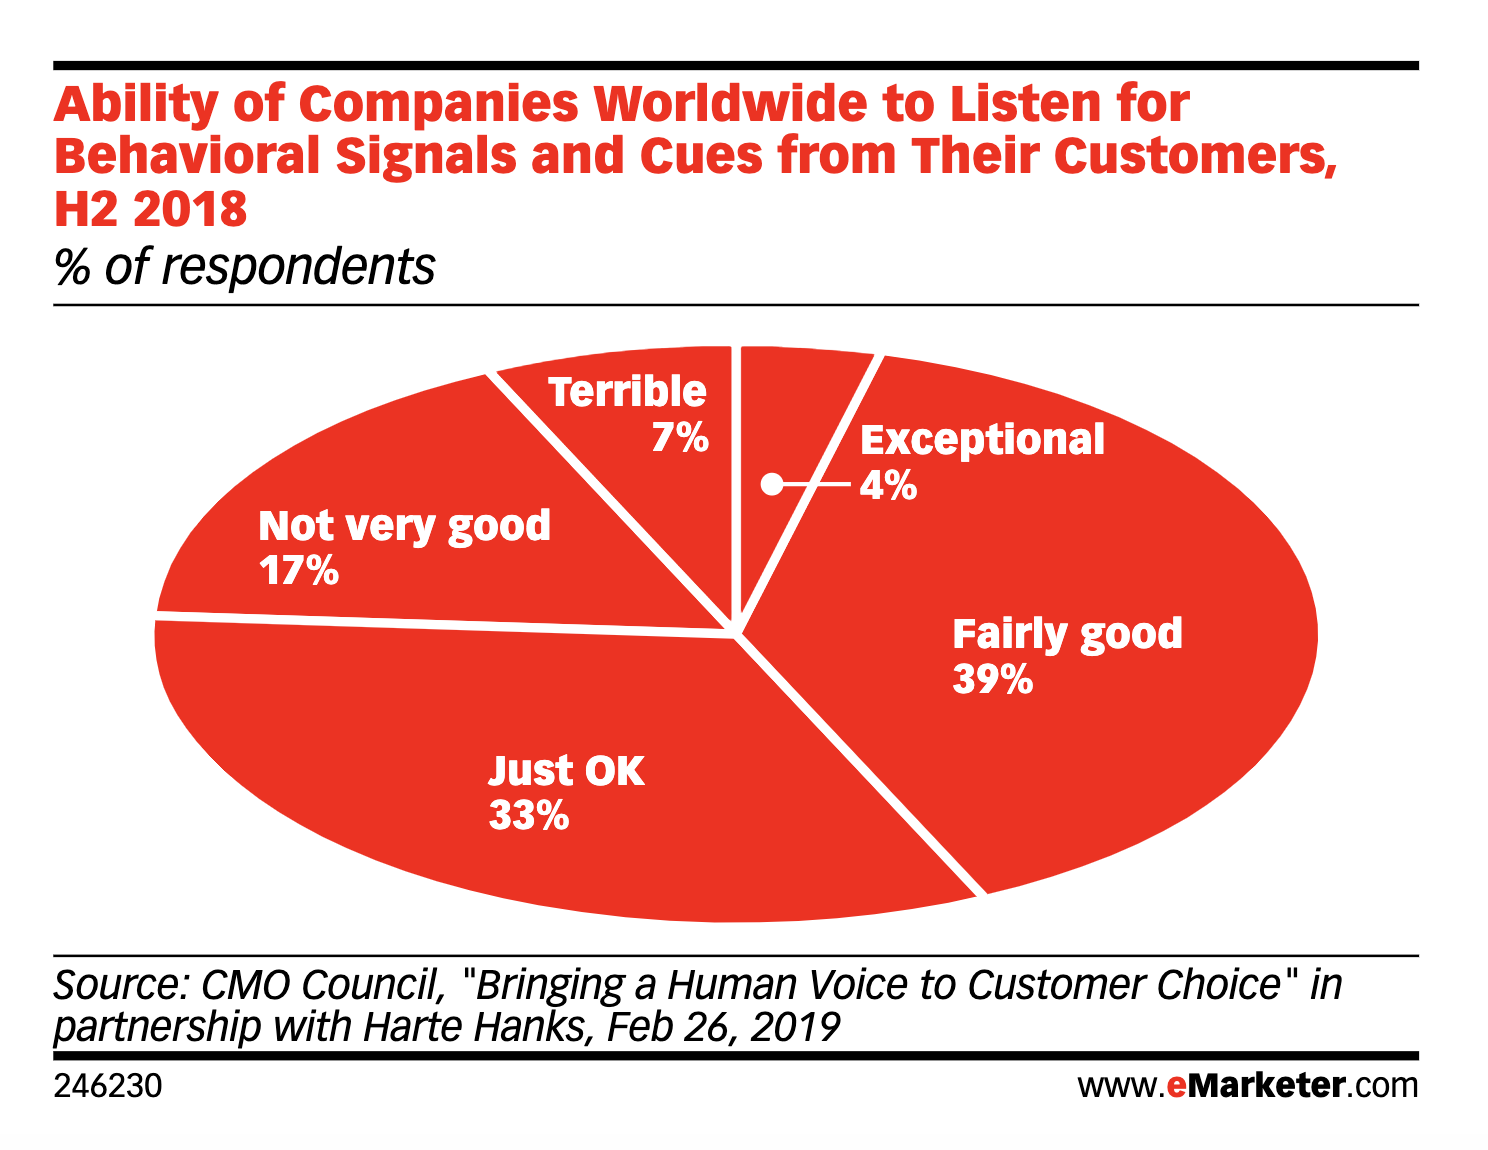 marketing pie chart showing 7% of companies are